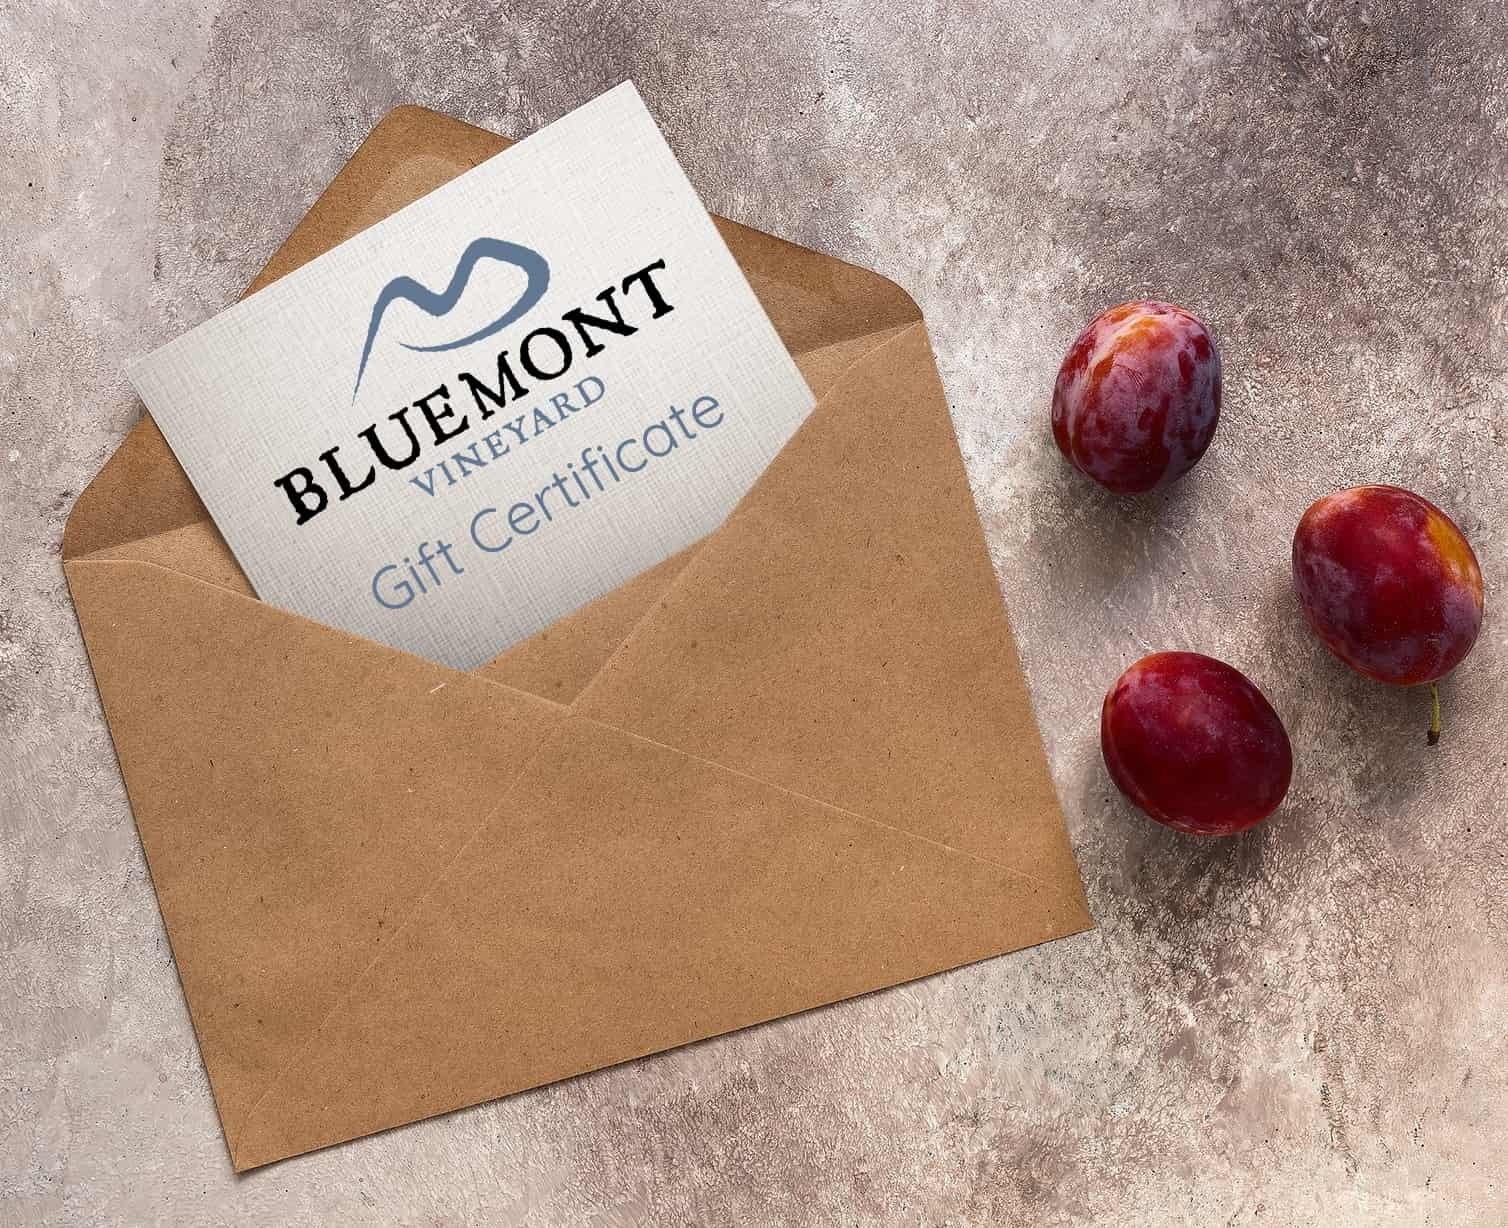 Bluemont Gift Certificate in an envelope